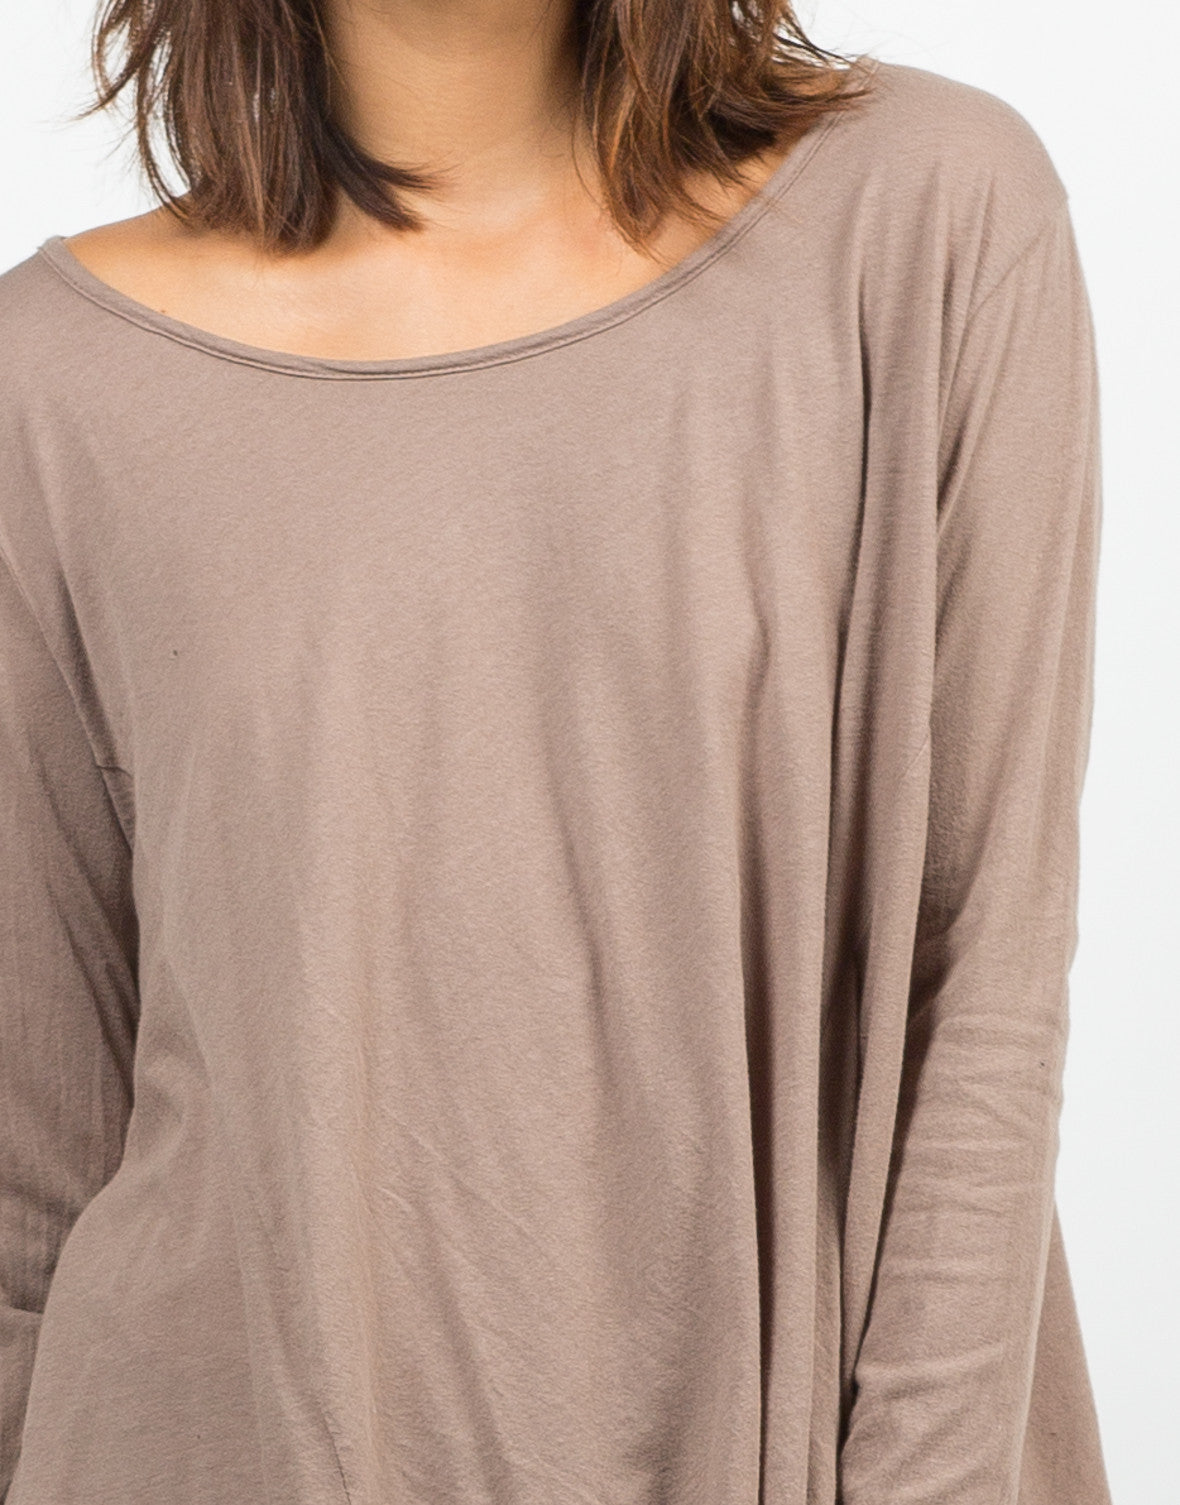 Detail of Basic Long Sleeve Tee